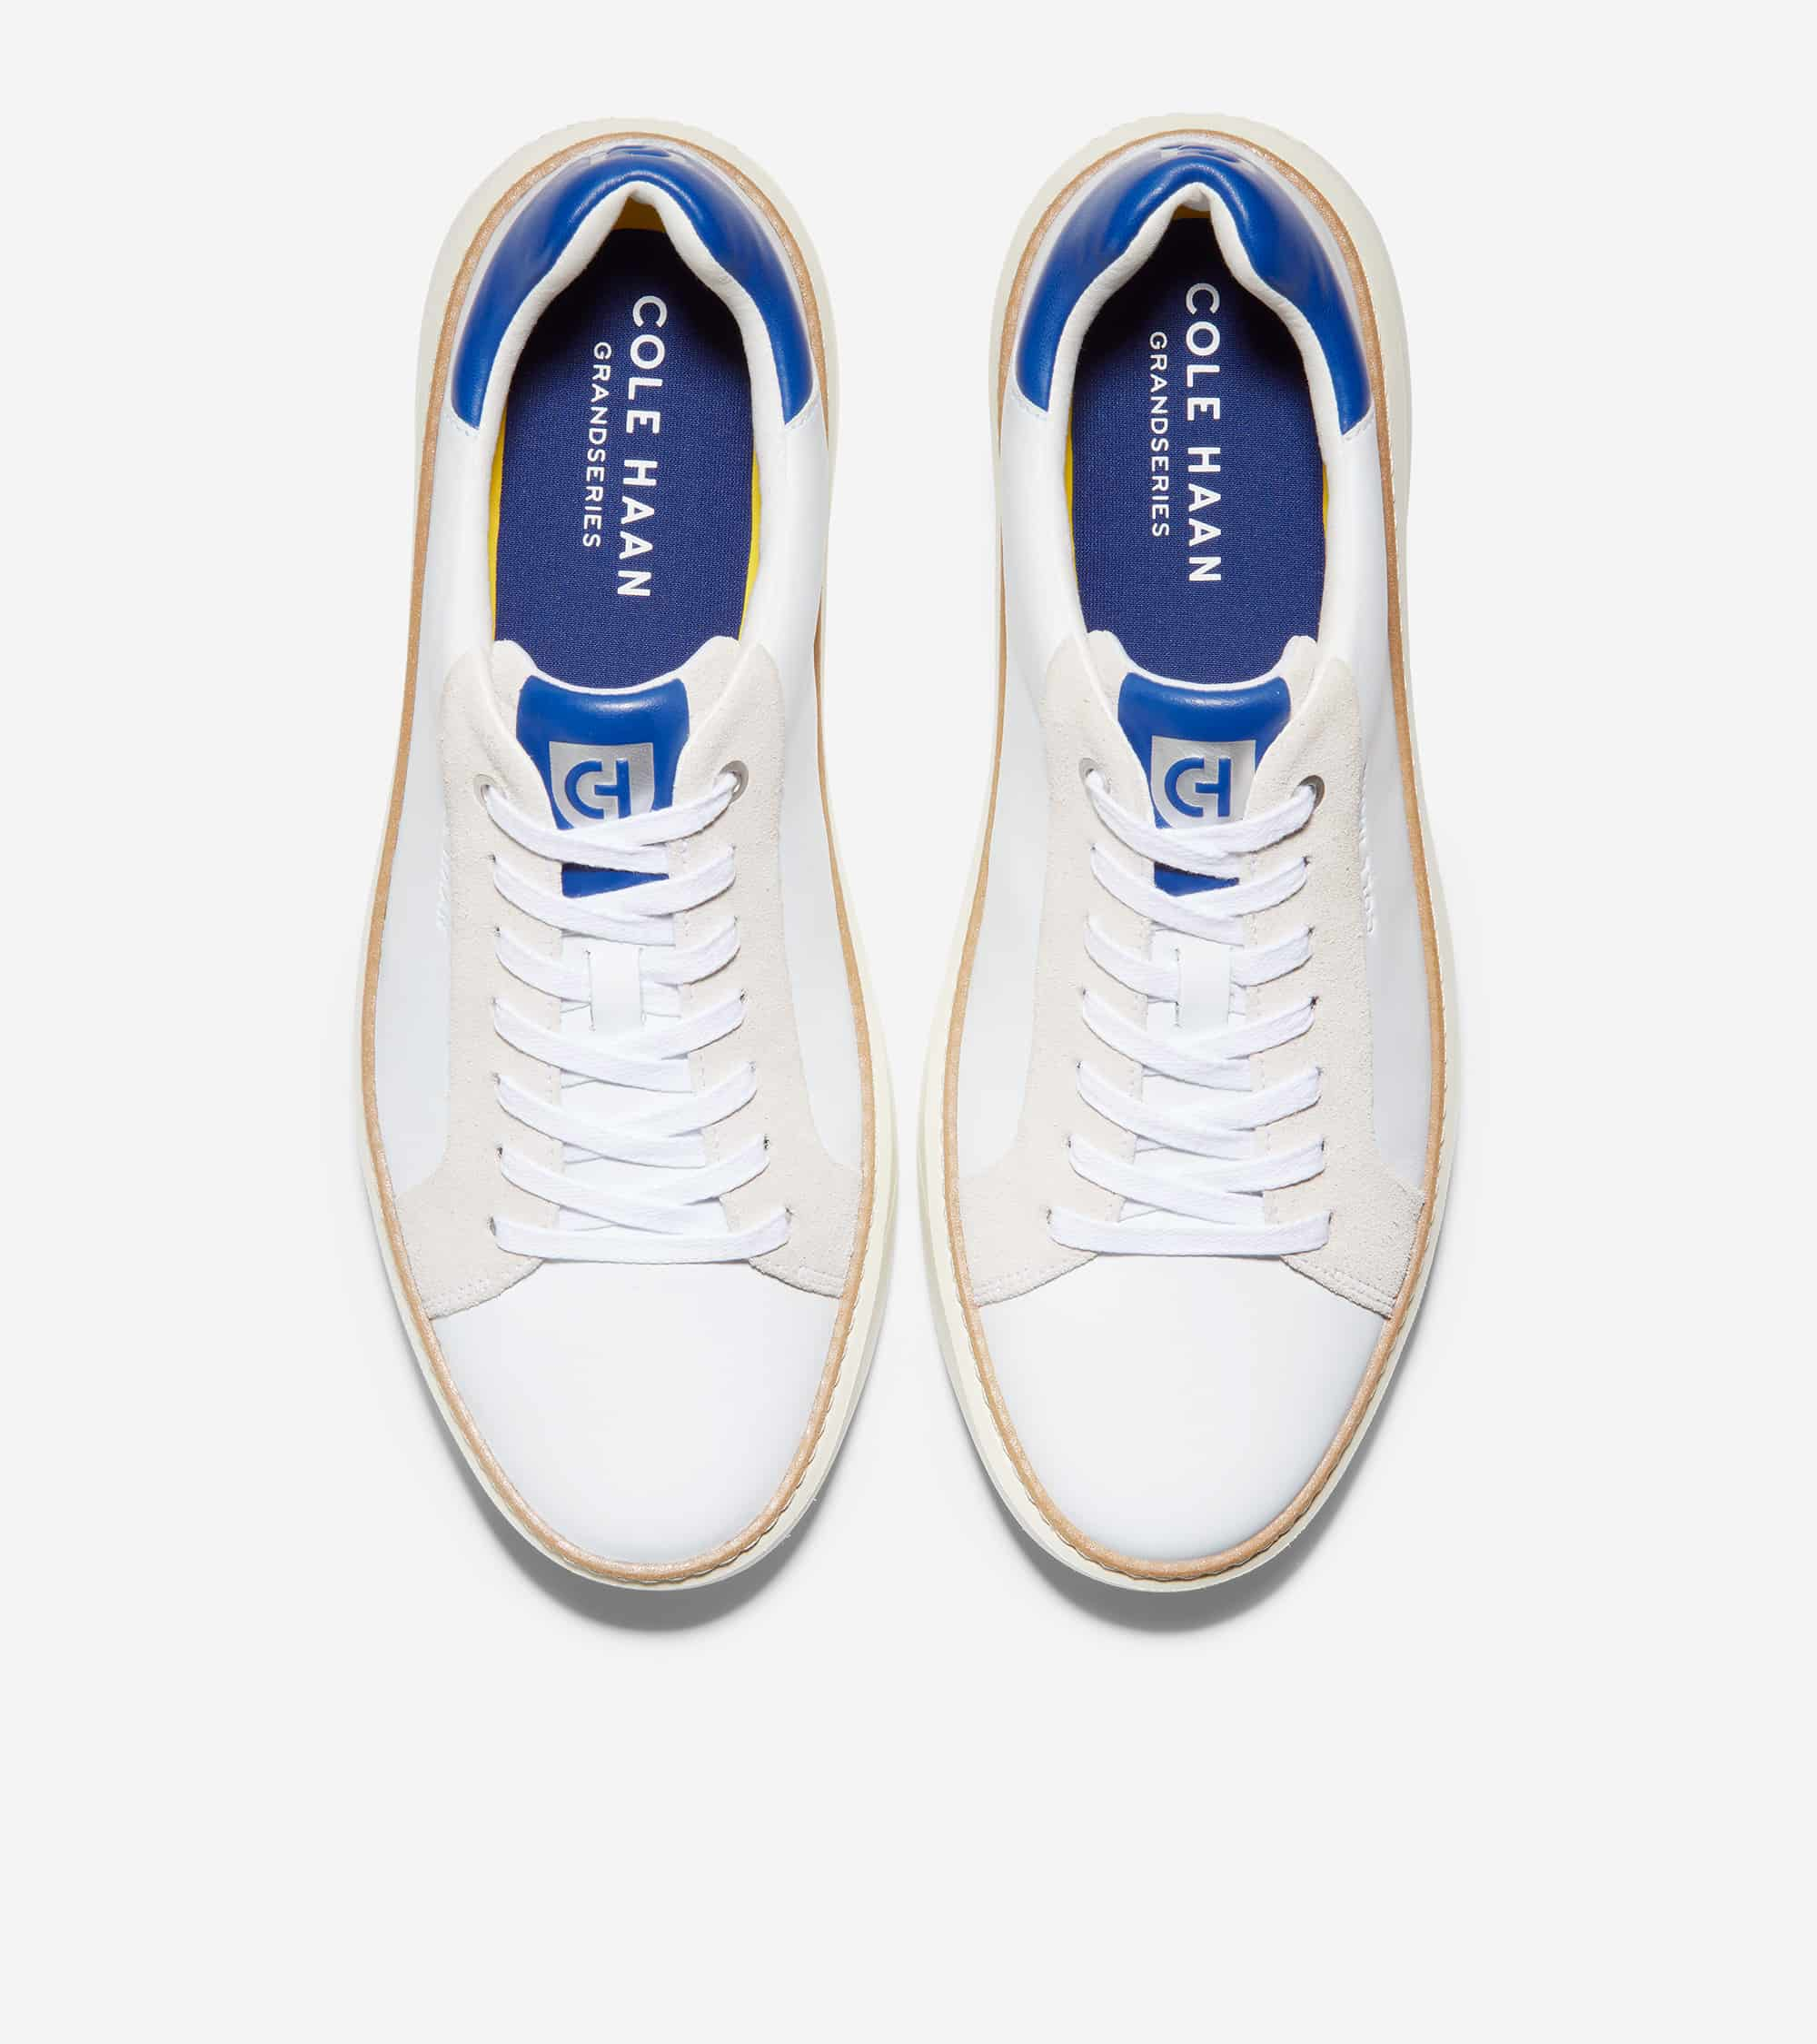 Cole Haan Grandprø Topspin Sneaker Optic White/Pacific Blue